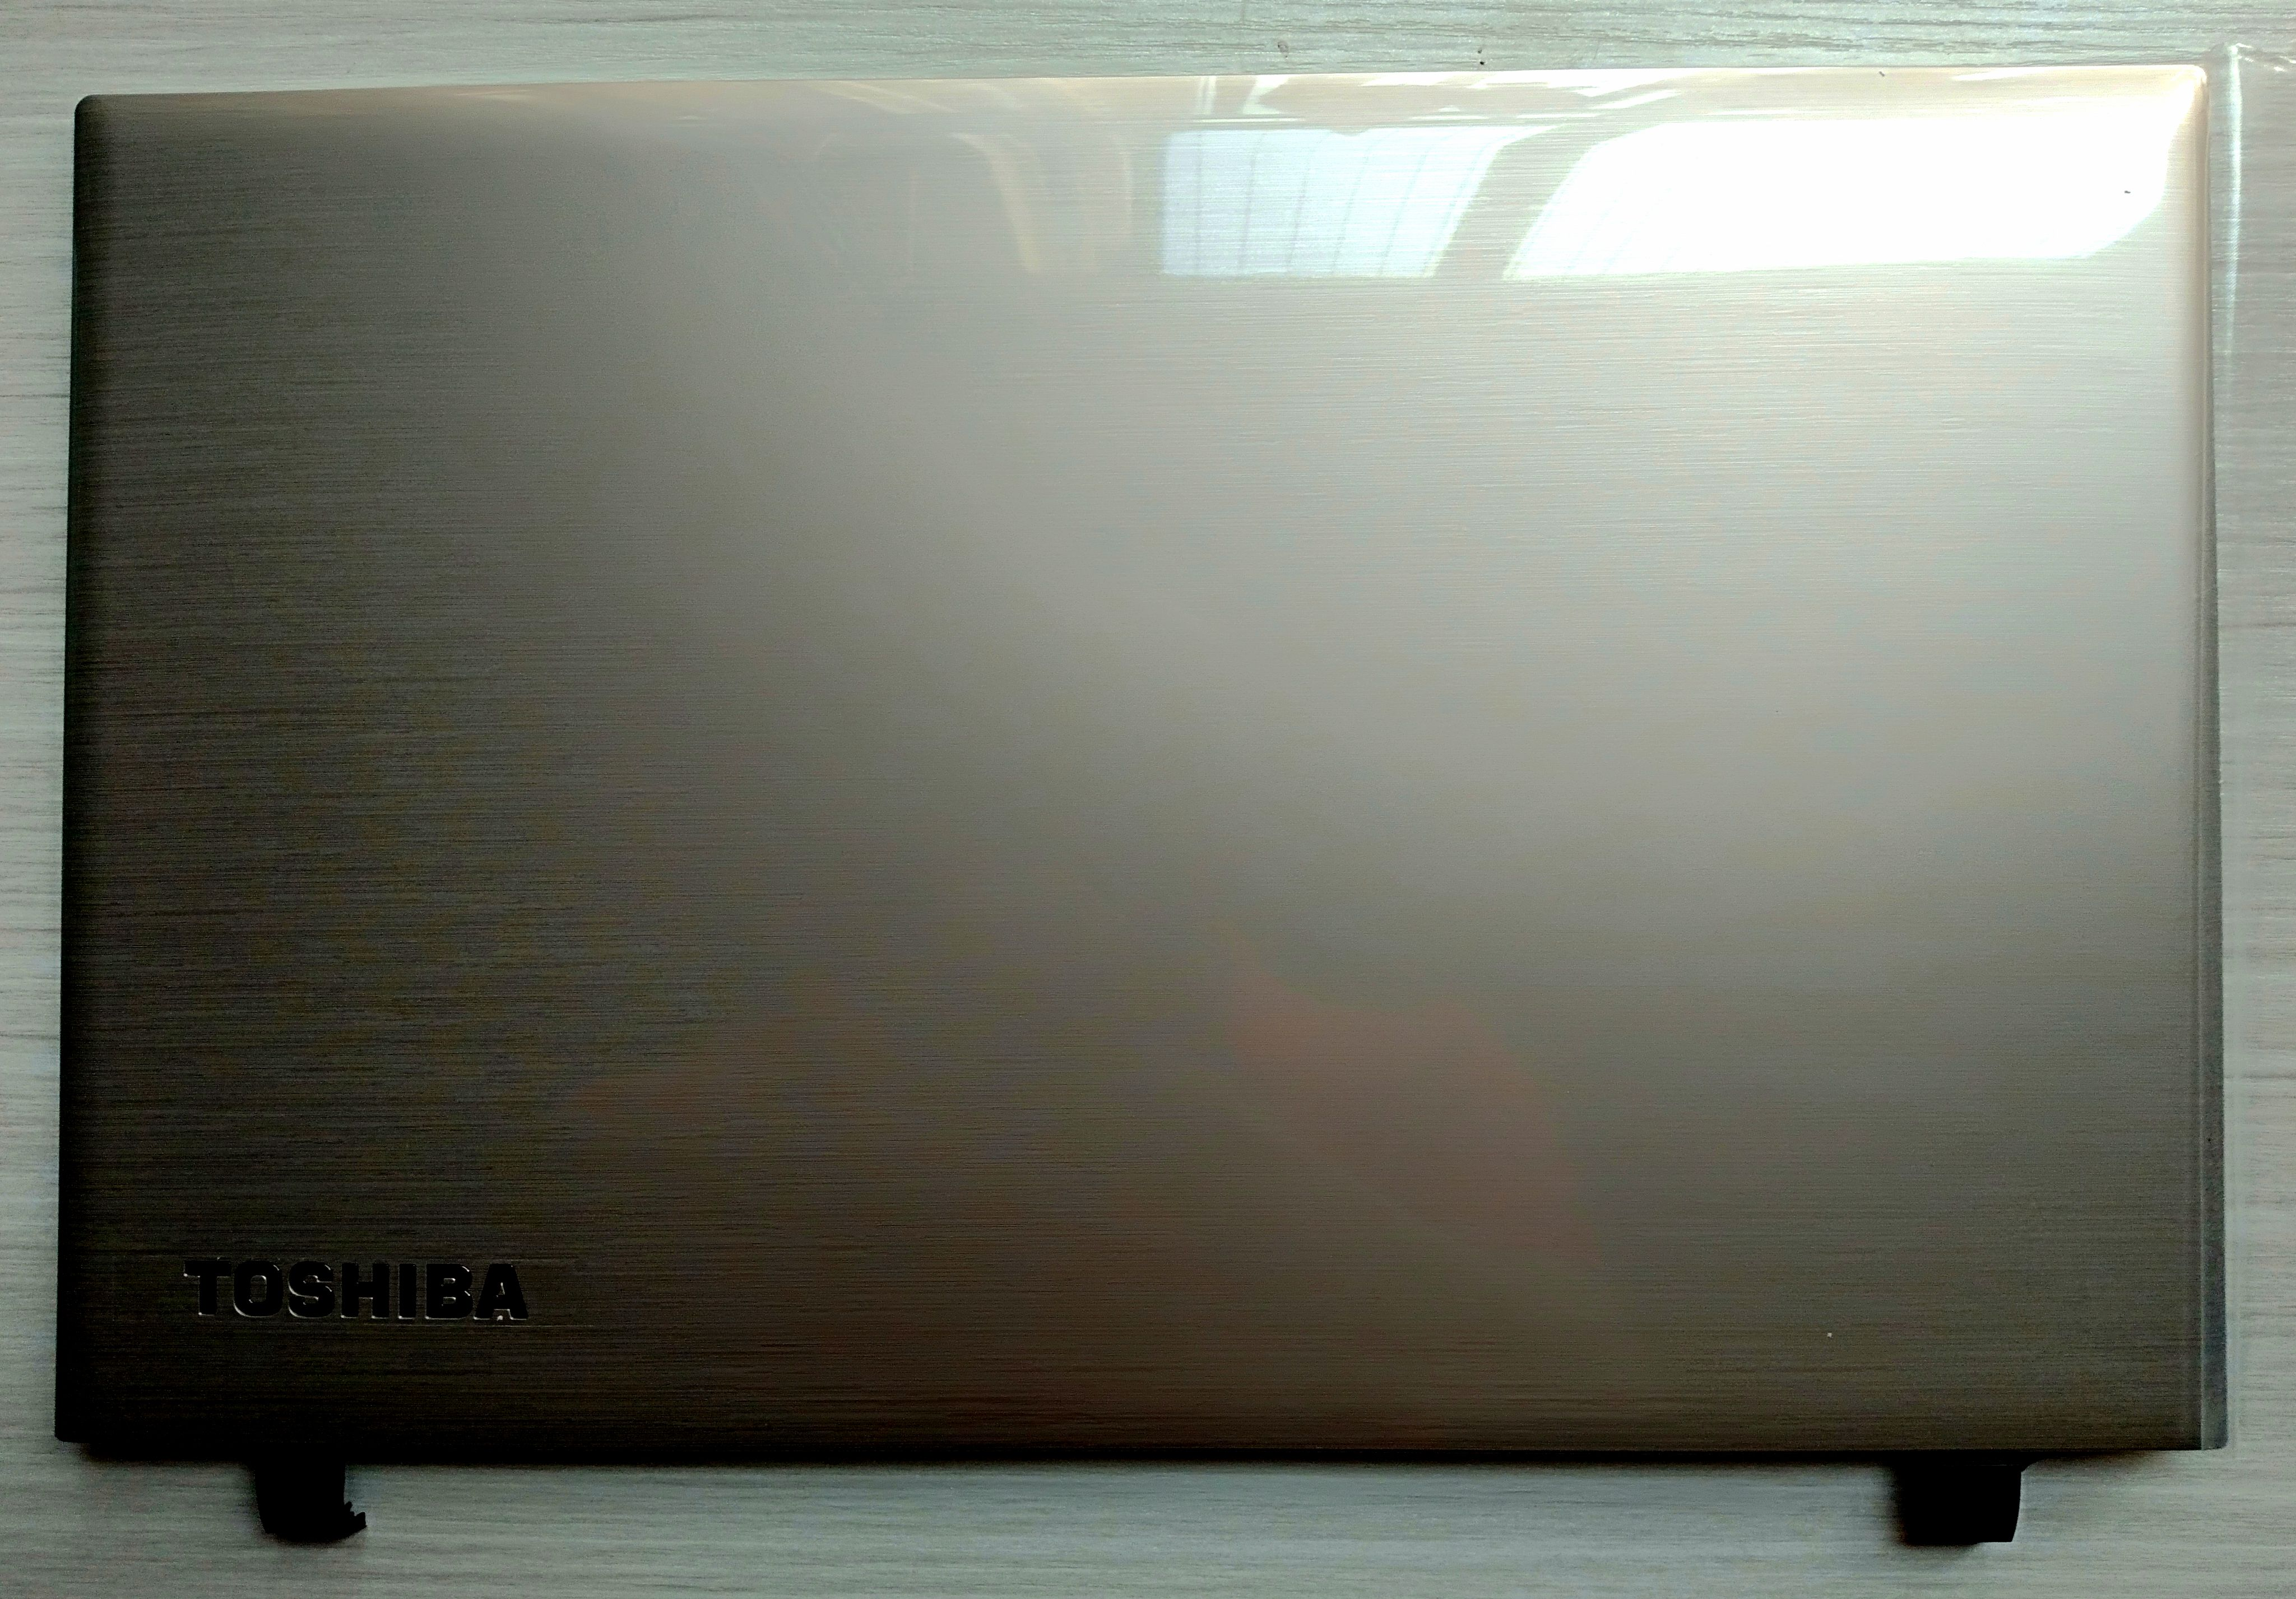 New for Toshiba Satellite C55t-C C55t-C5300 c55t-c5241 C55t-C5224 LCD Back Cover top case Silver